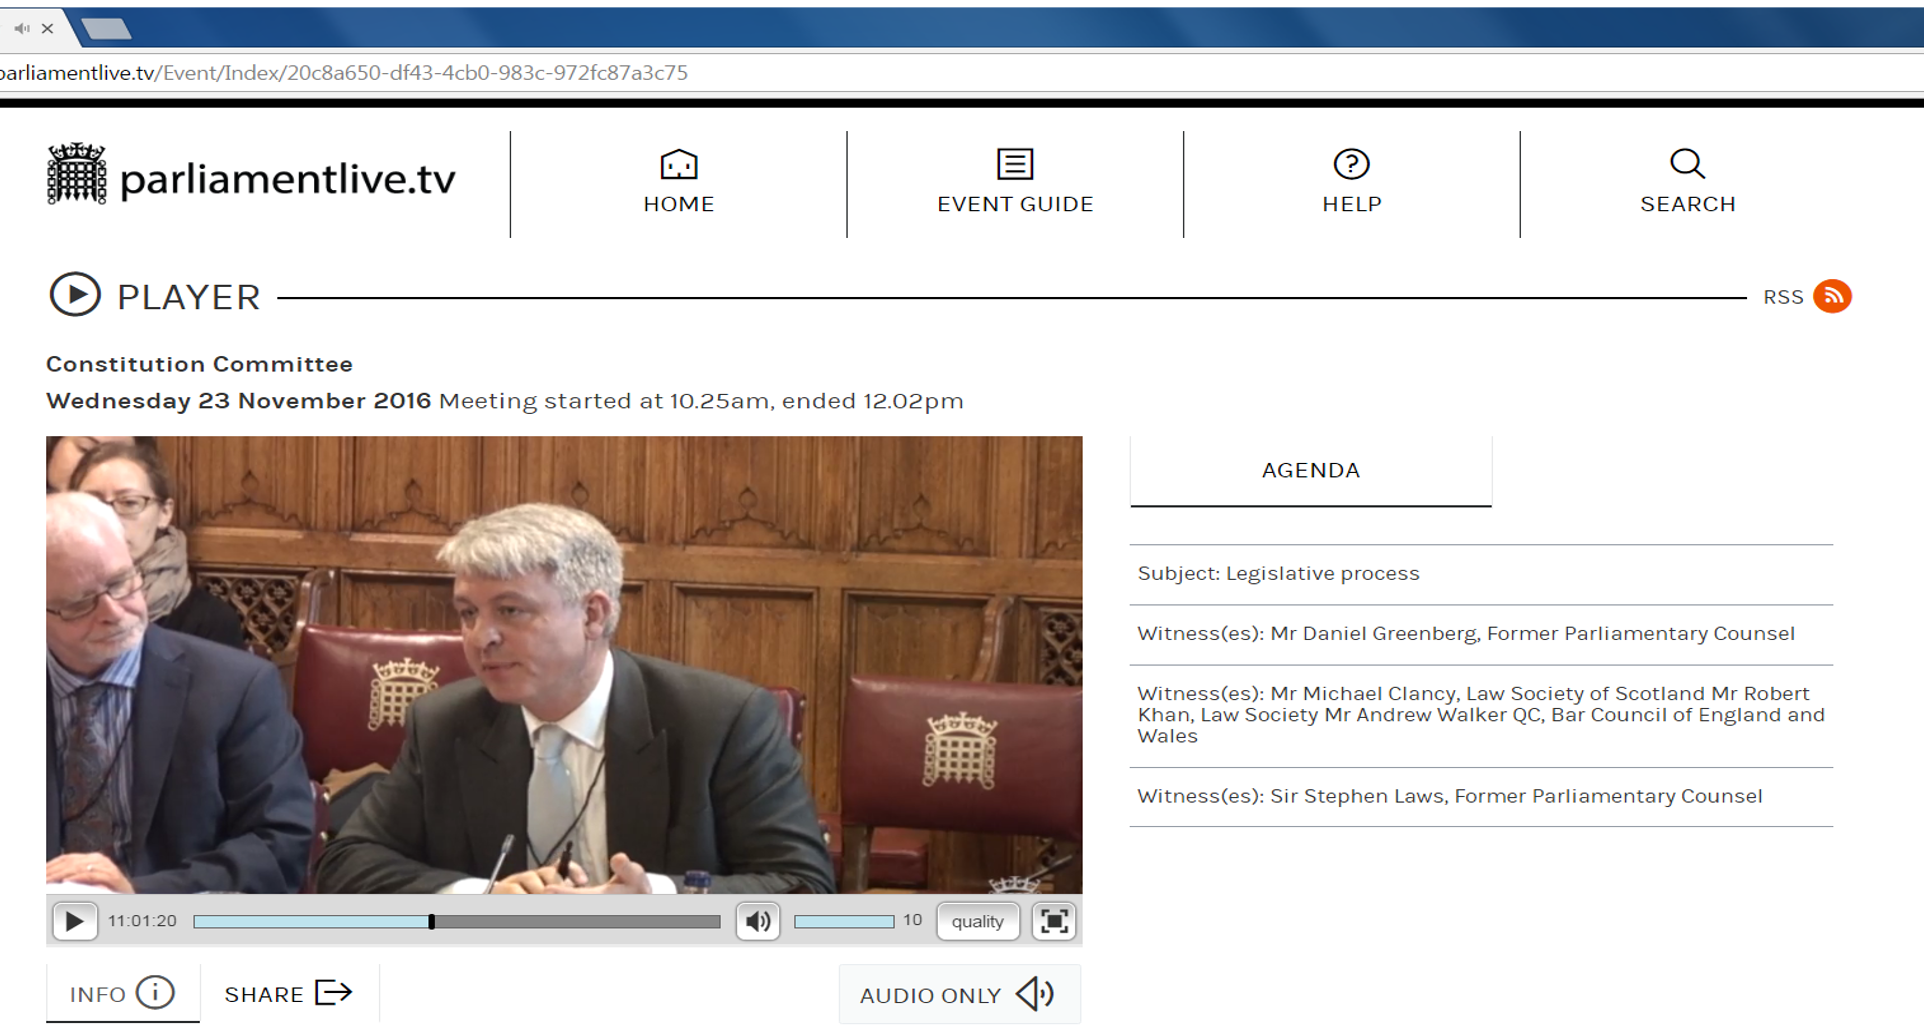 Vice Chair Andrew Walker QC gives evidence to the House of Lords Constitution inquiry on the legislative process